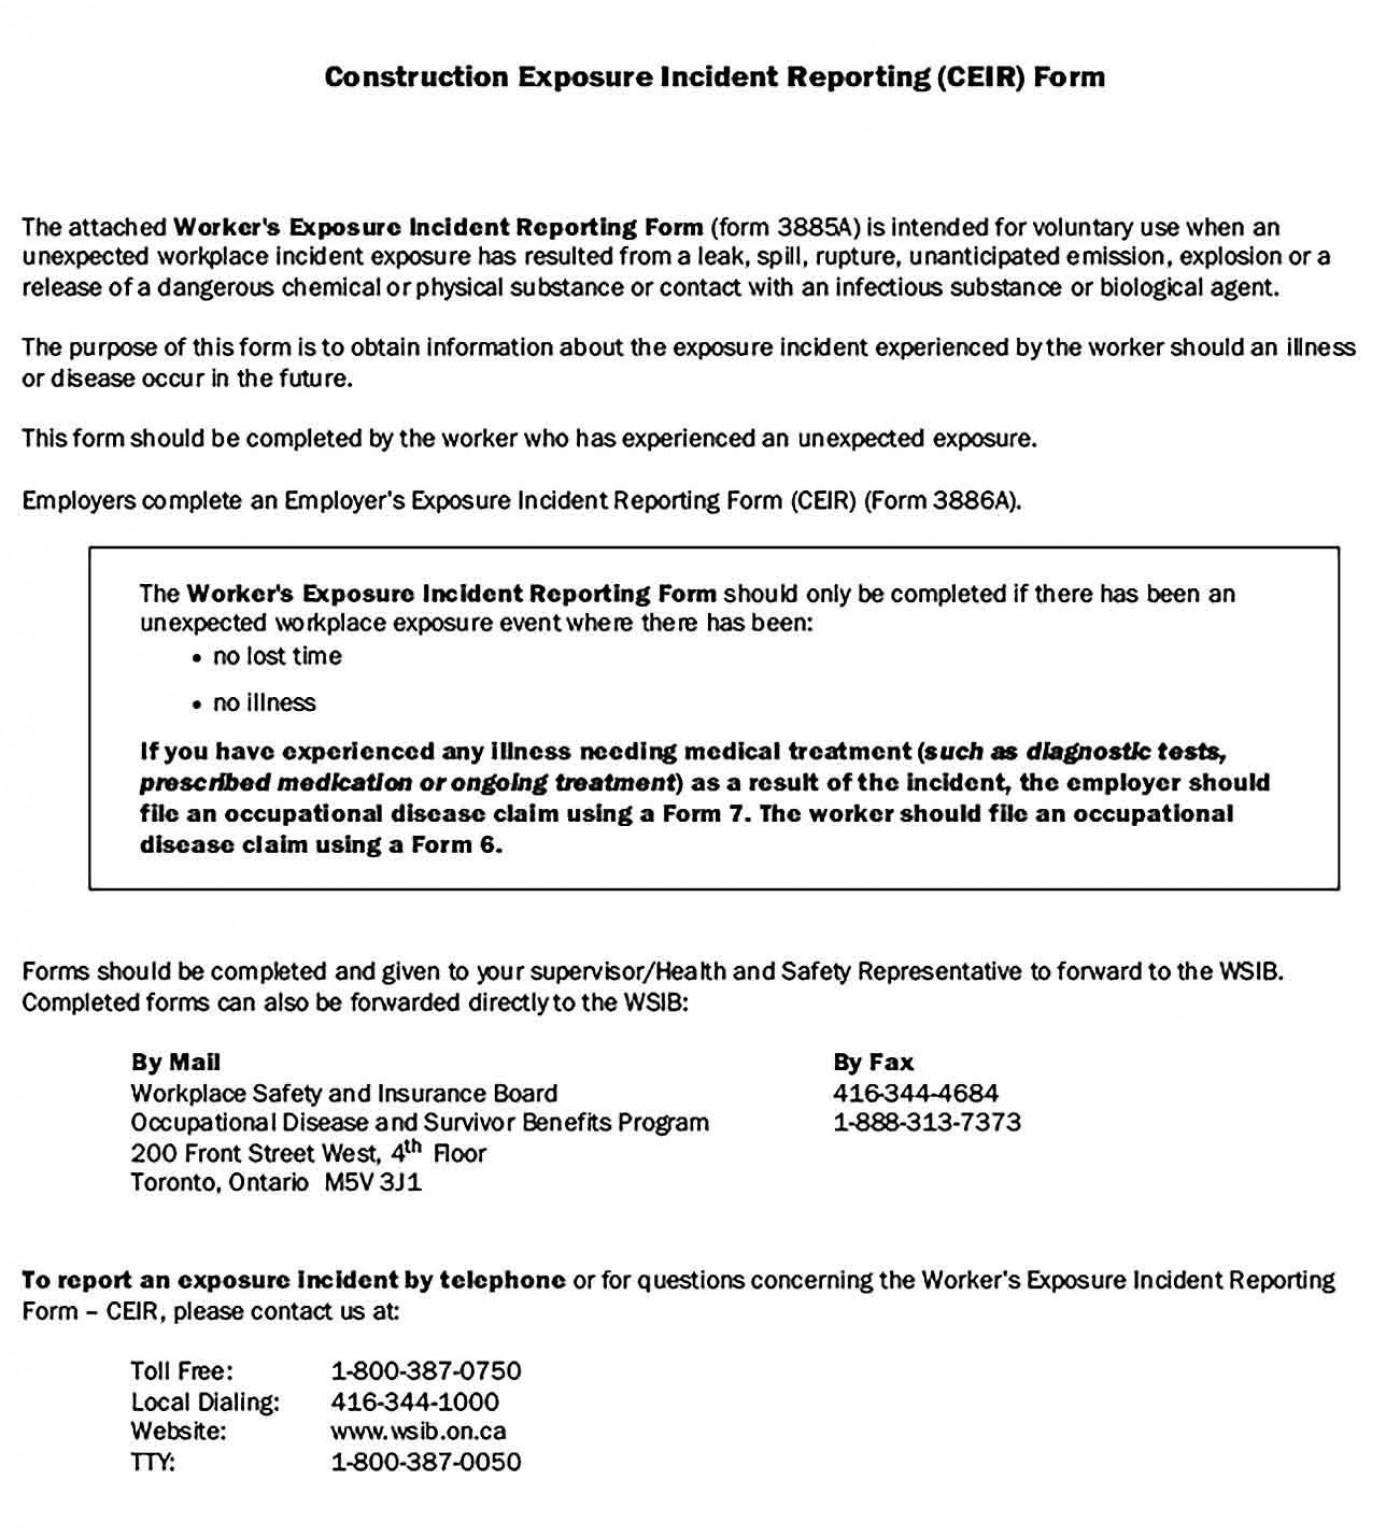 004 Fascinating Workplace Injury Report Form Ontario High Definition  Incident Violence1400